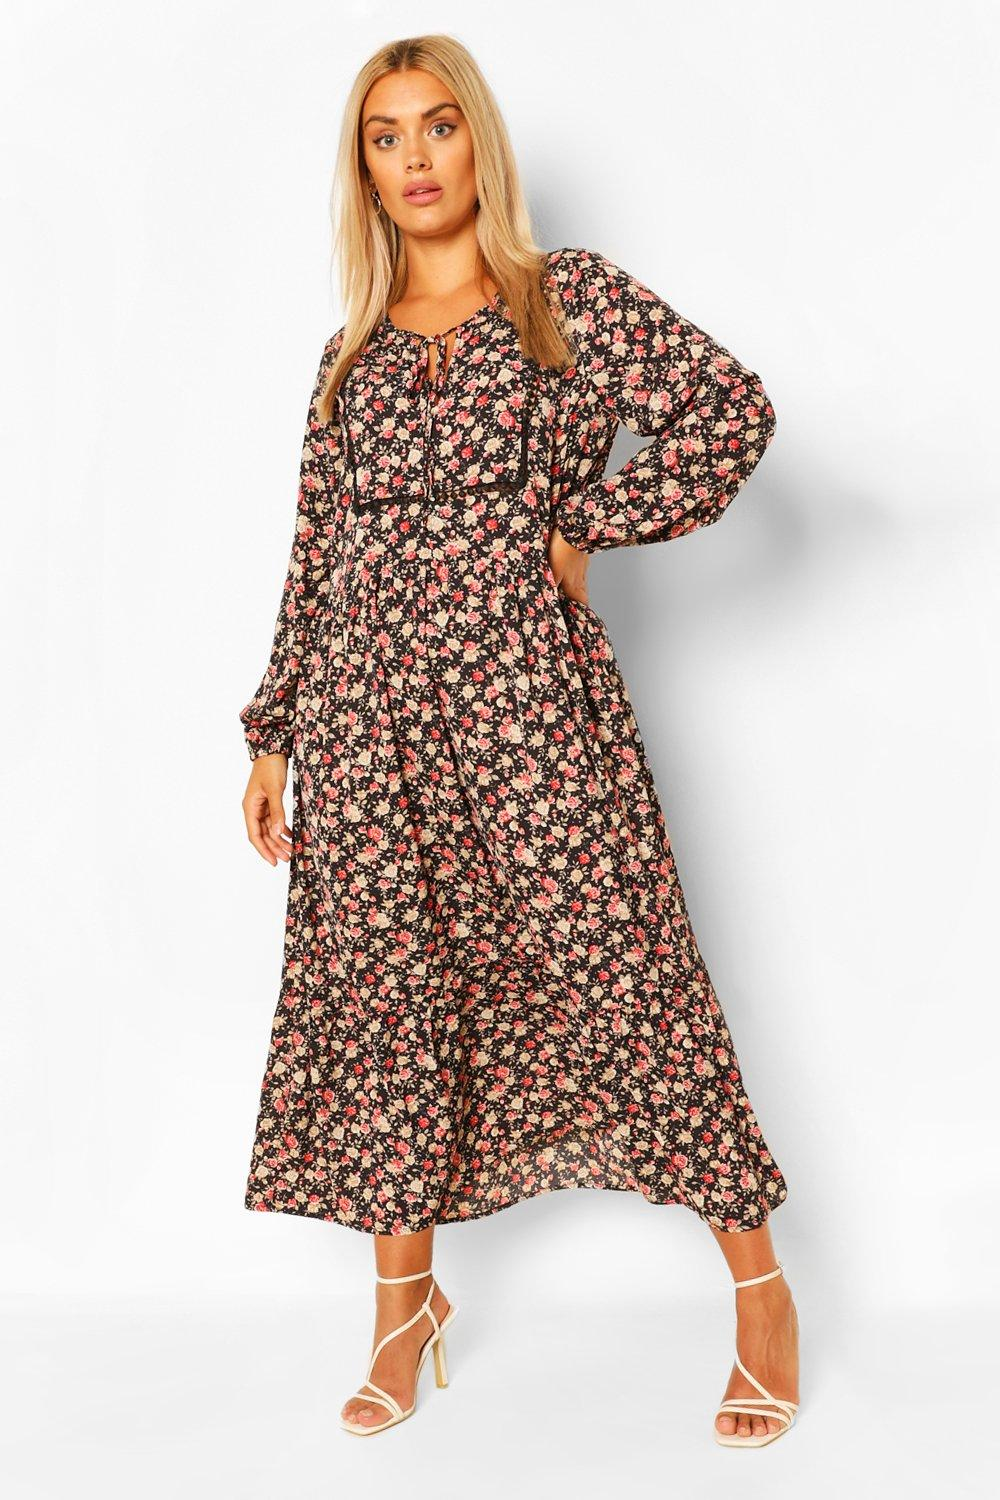 Cottagecore Dresses Aesthetic, Granny, Vintage Womens Plus Floral Smock Boho Maxi Dress - Black - 16 $19.20 AT vintagedancer.com